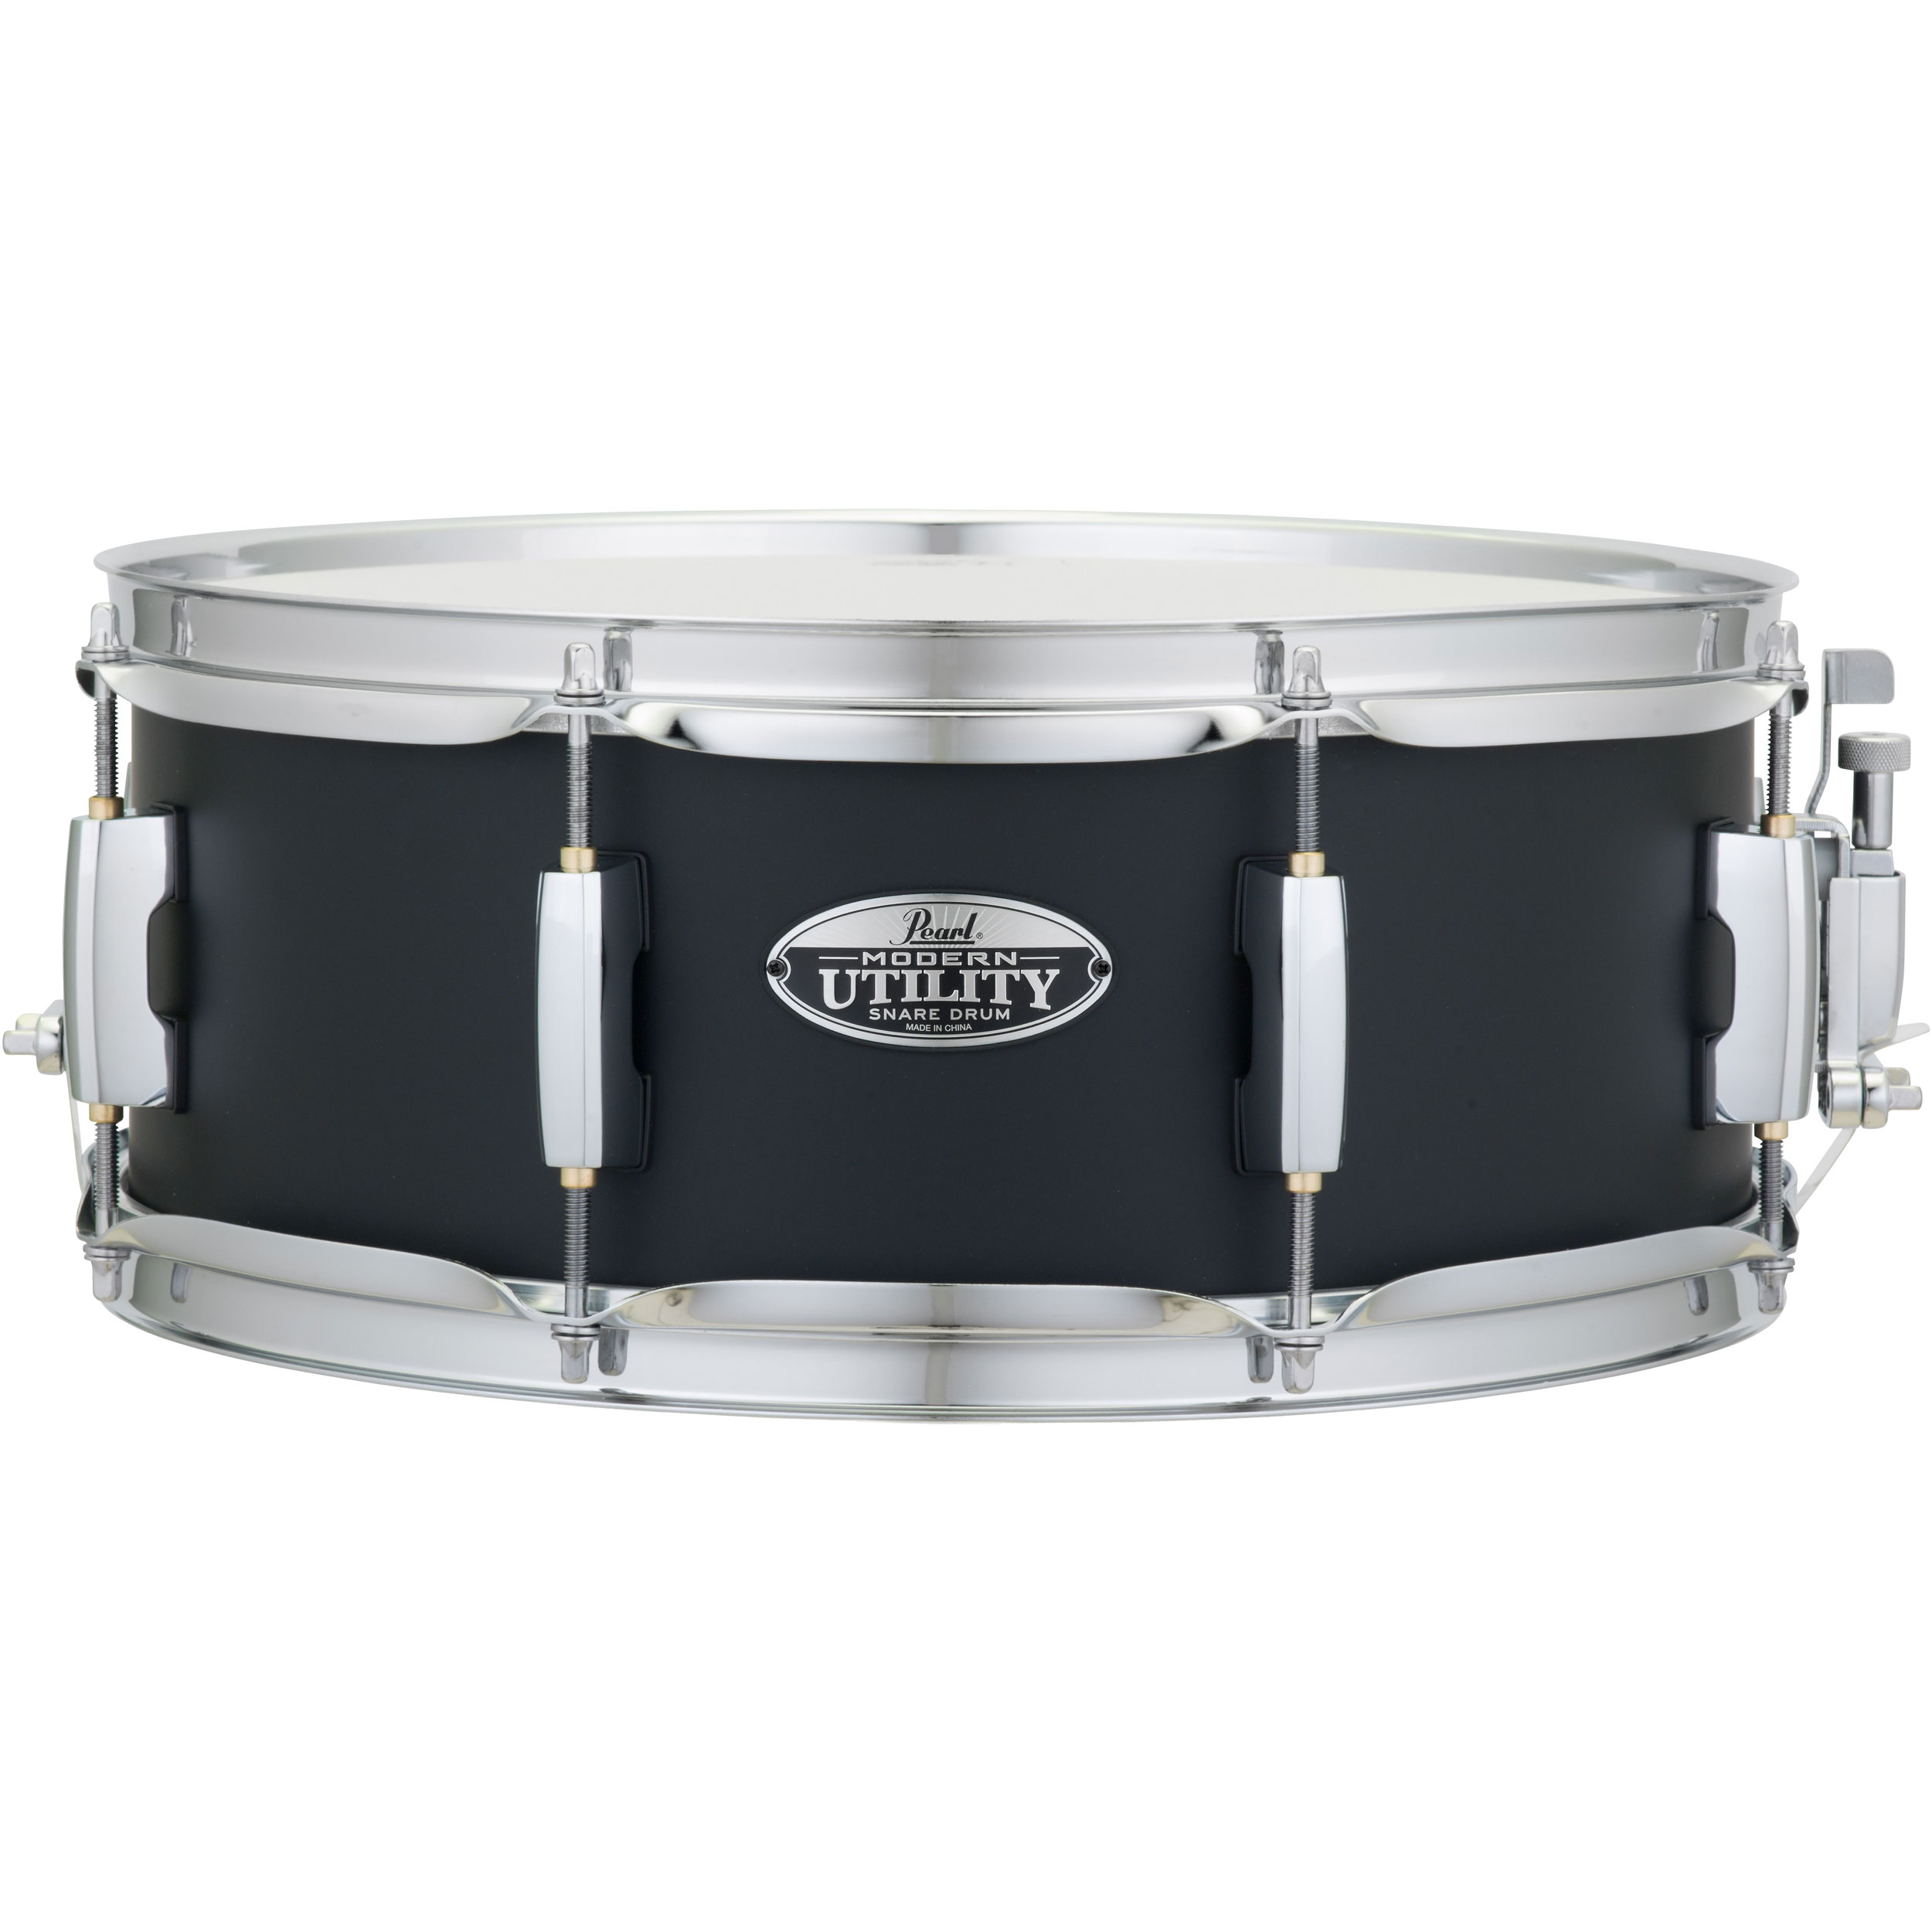 """Pearl 14"""" x 5.5"""" Modern Utility Maple Snare Drum"""